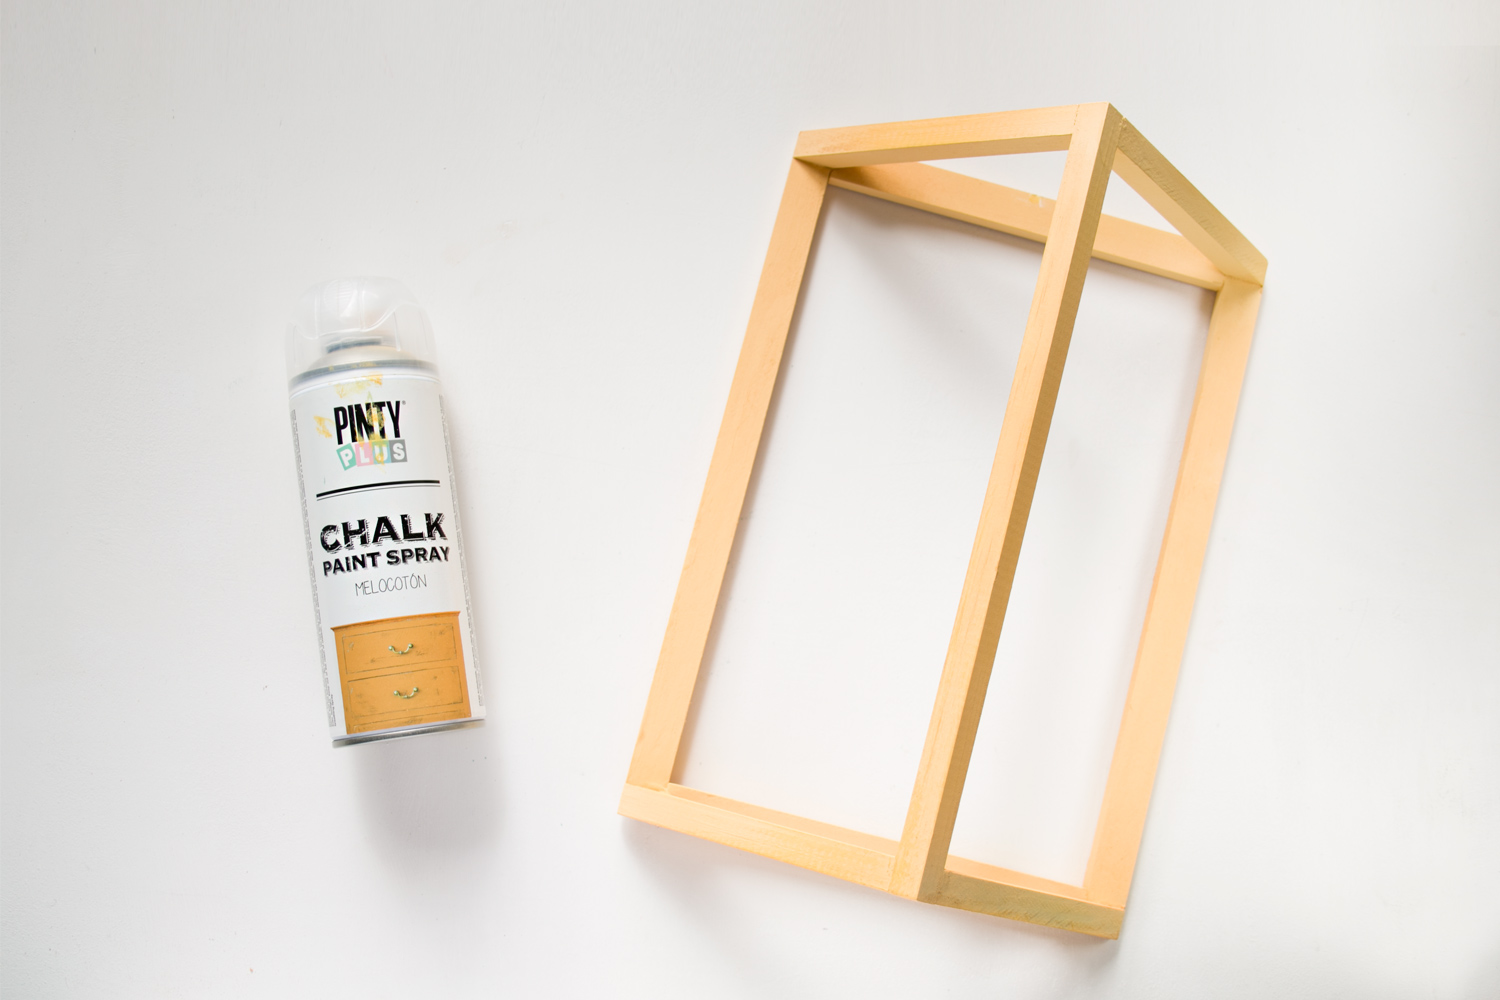 chalk en spray melocoton